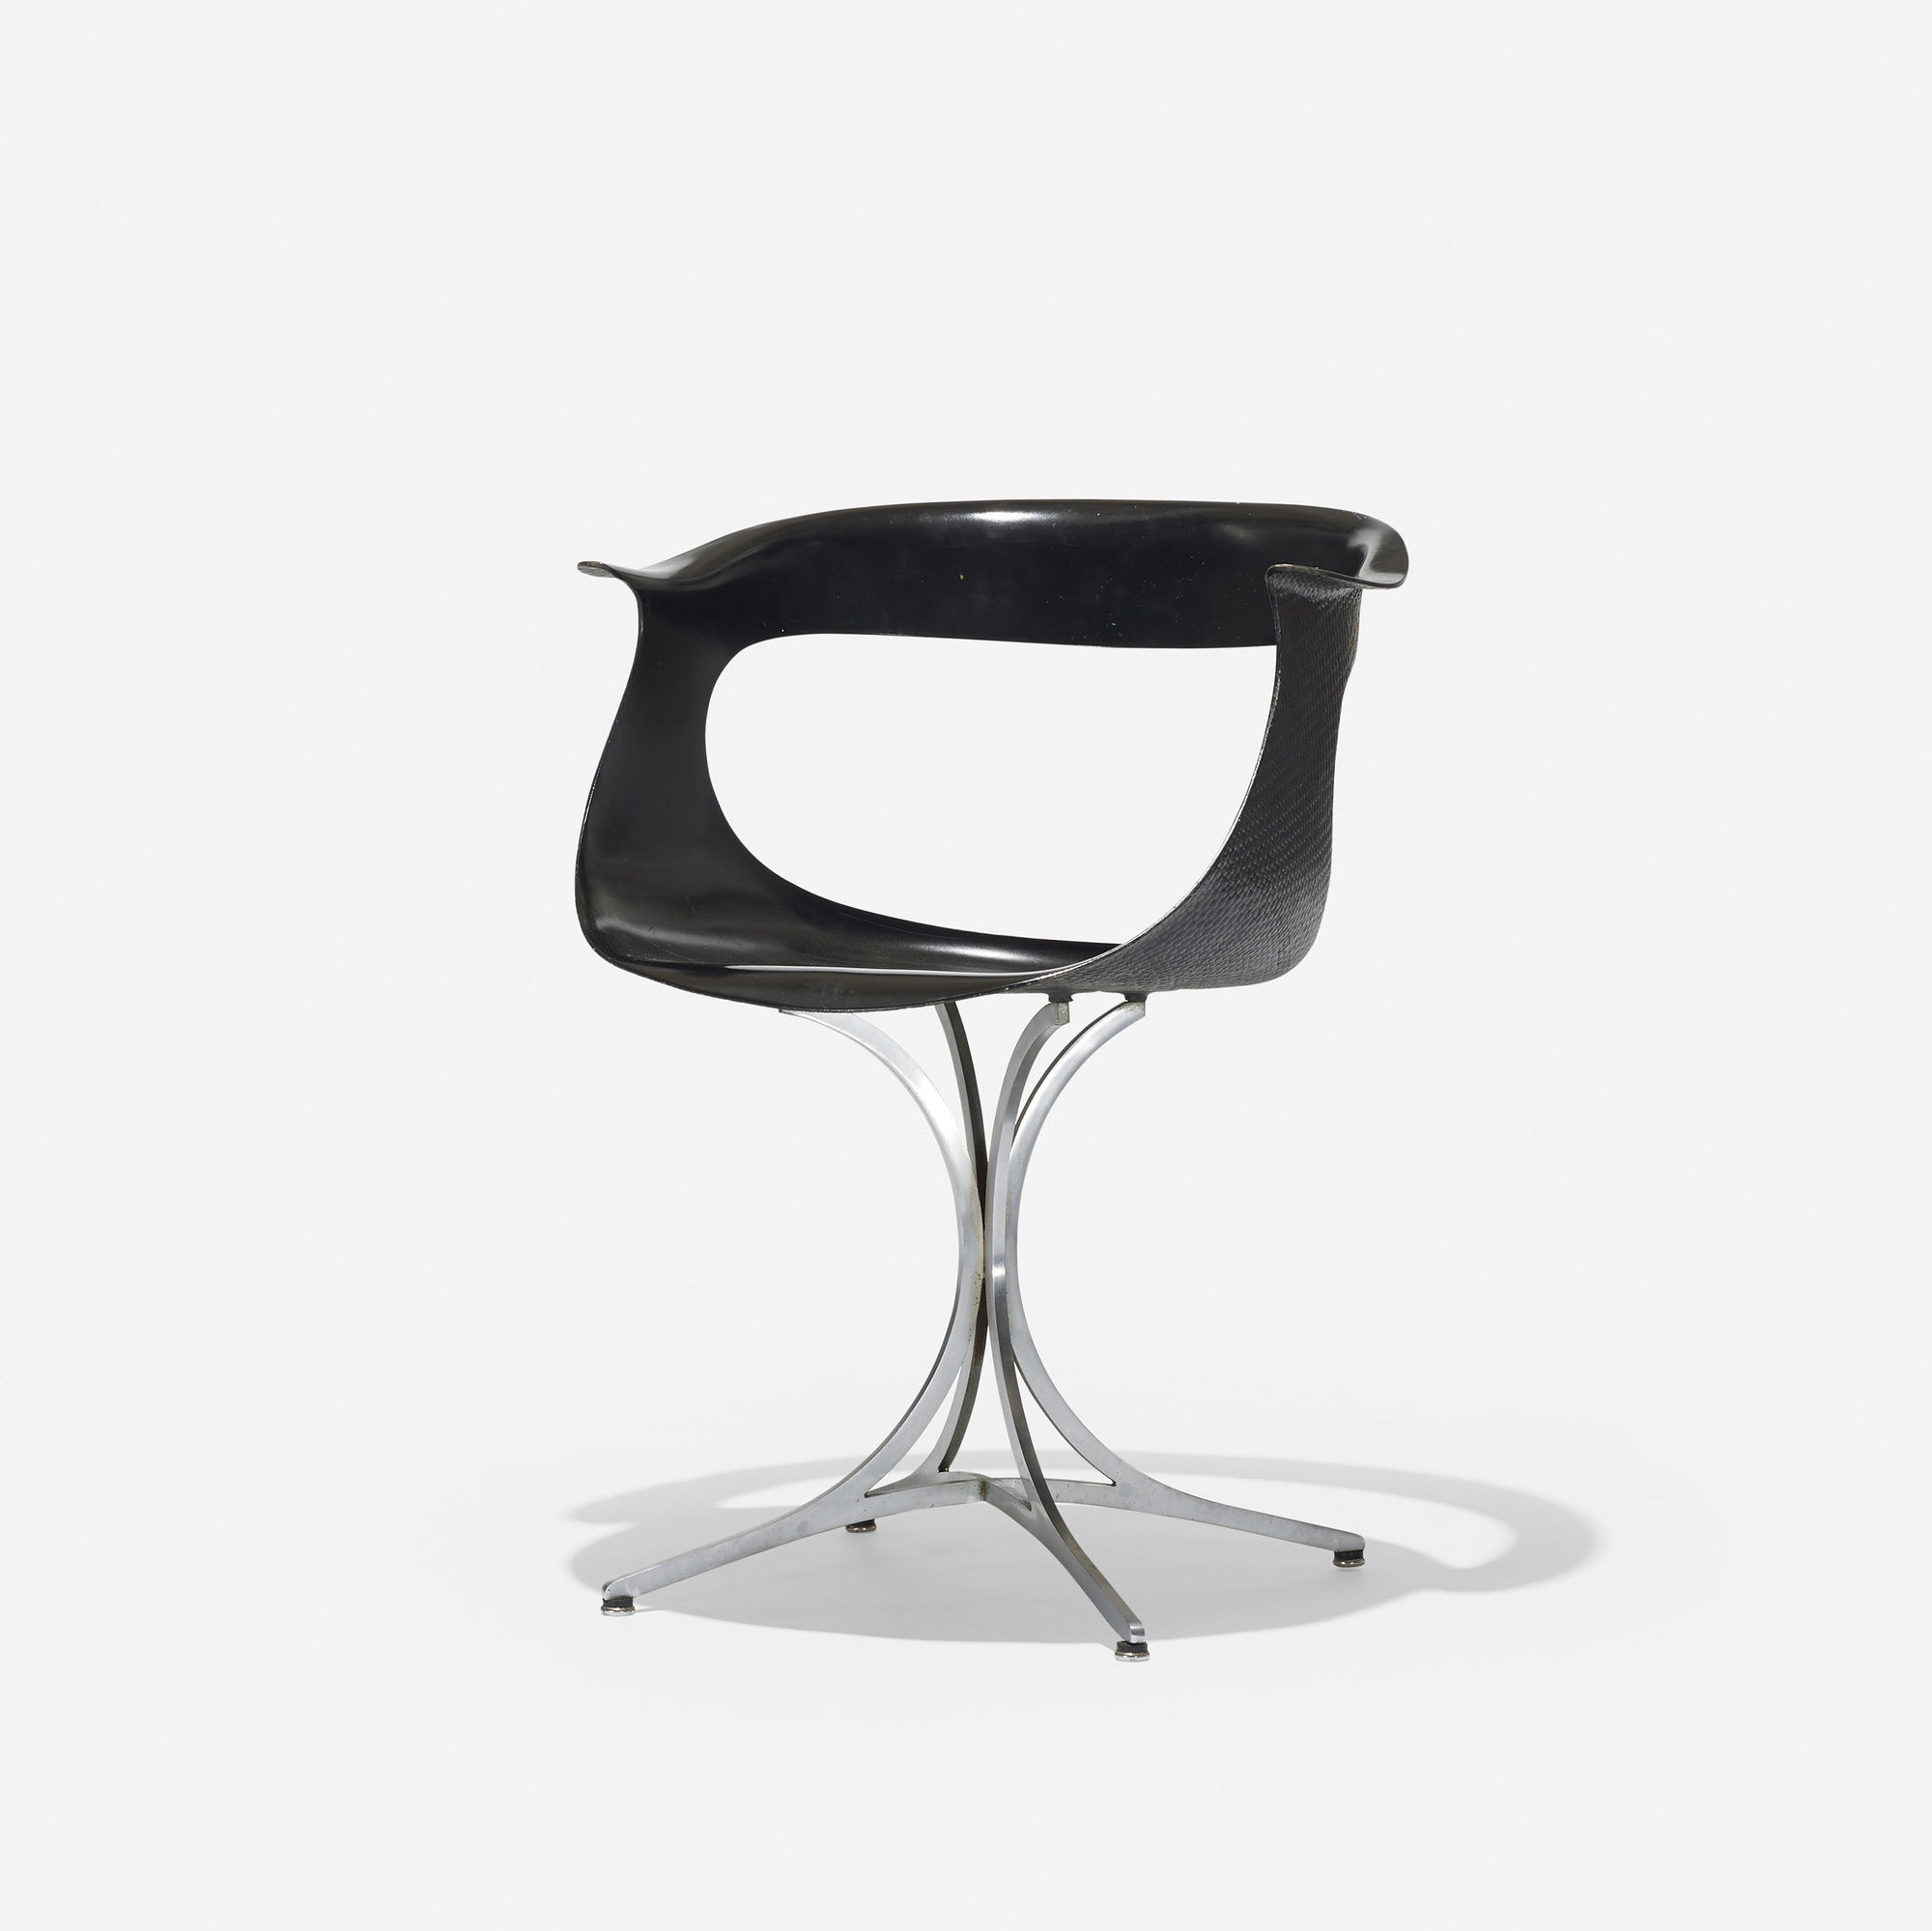 ... 183: Erwine and Estelle Laverne / Lotus armchair (2 of 4)